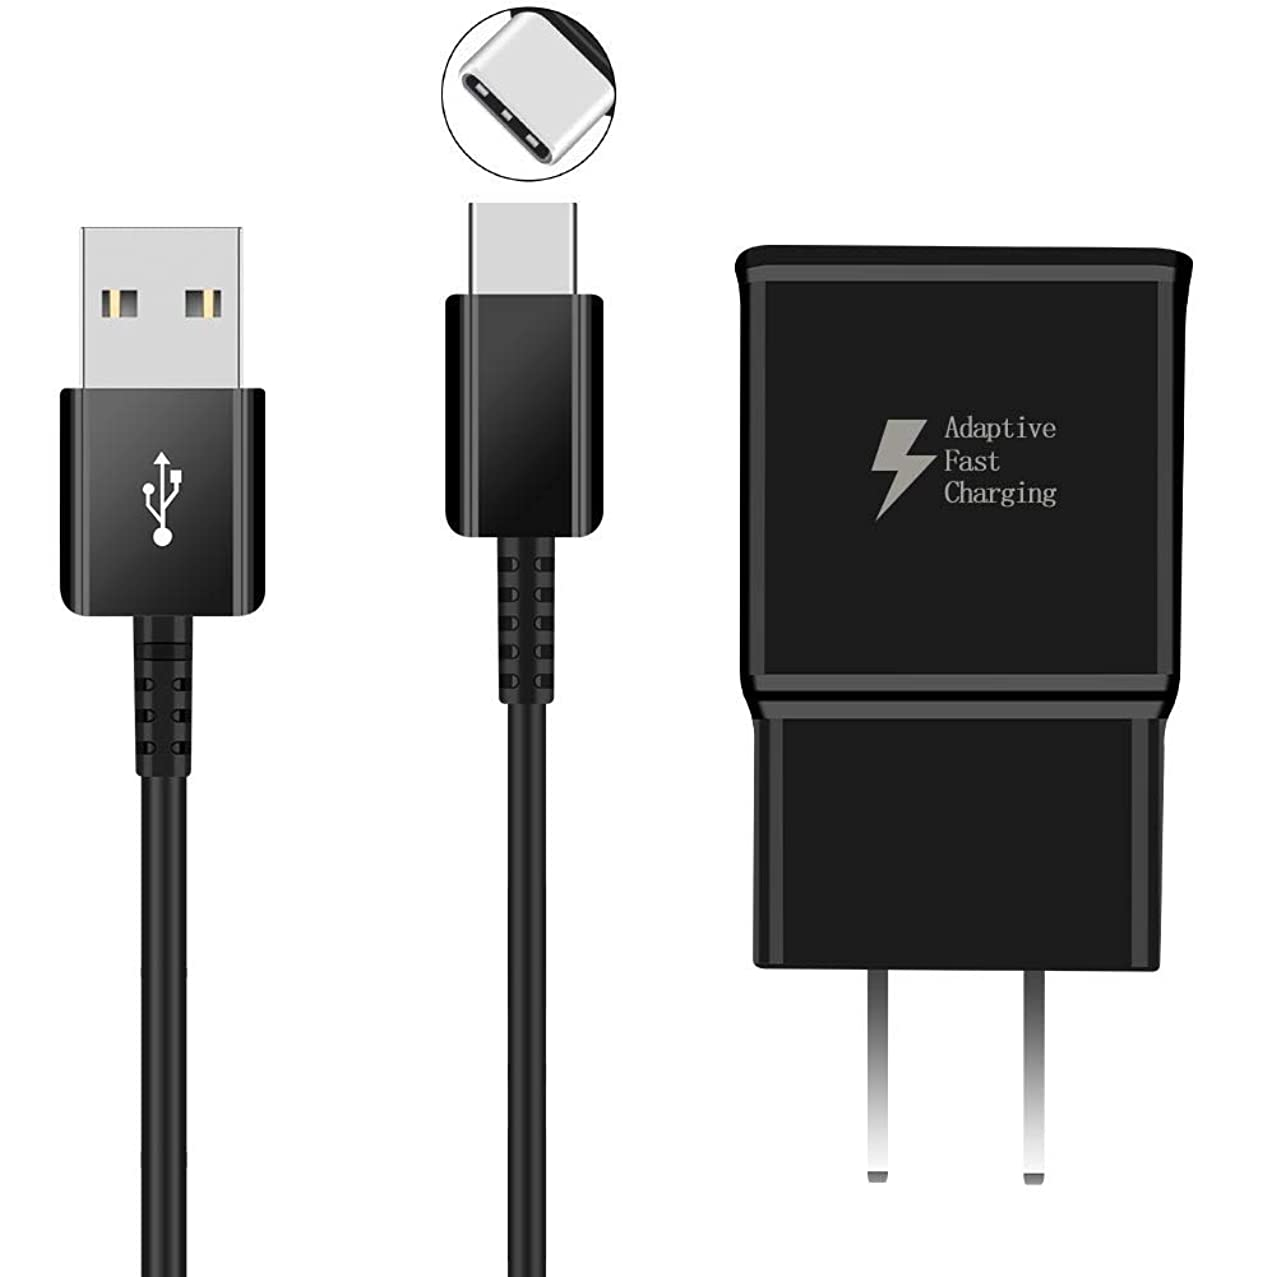 LYWHL Adaptive Fast Wall Charger Adapter with 4FT USB Type C Cable Compatible with Samsung Galaxy S8 S9 S10,LG G5 G6 G7 and Other Smart Phones Support AFC (Adaptive Fast Charging). (Black)